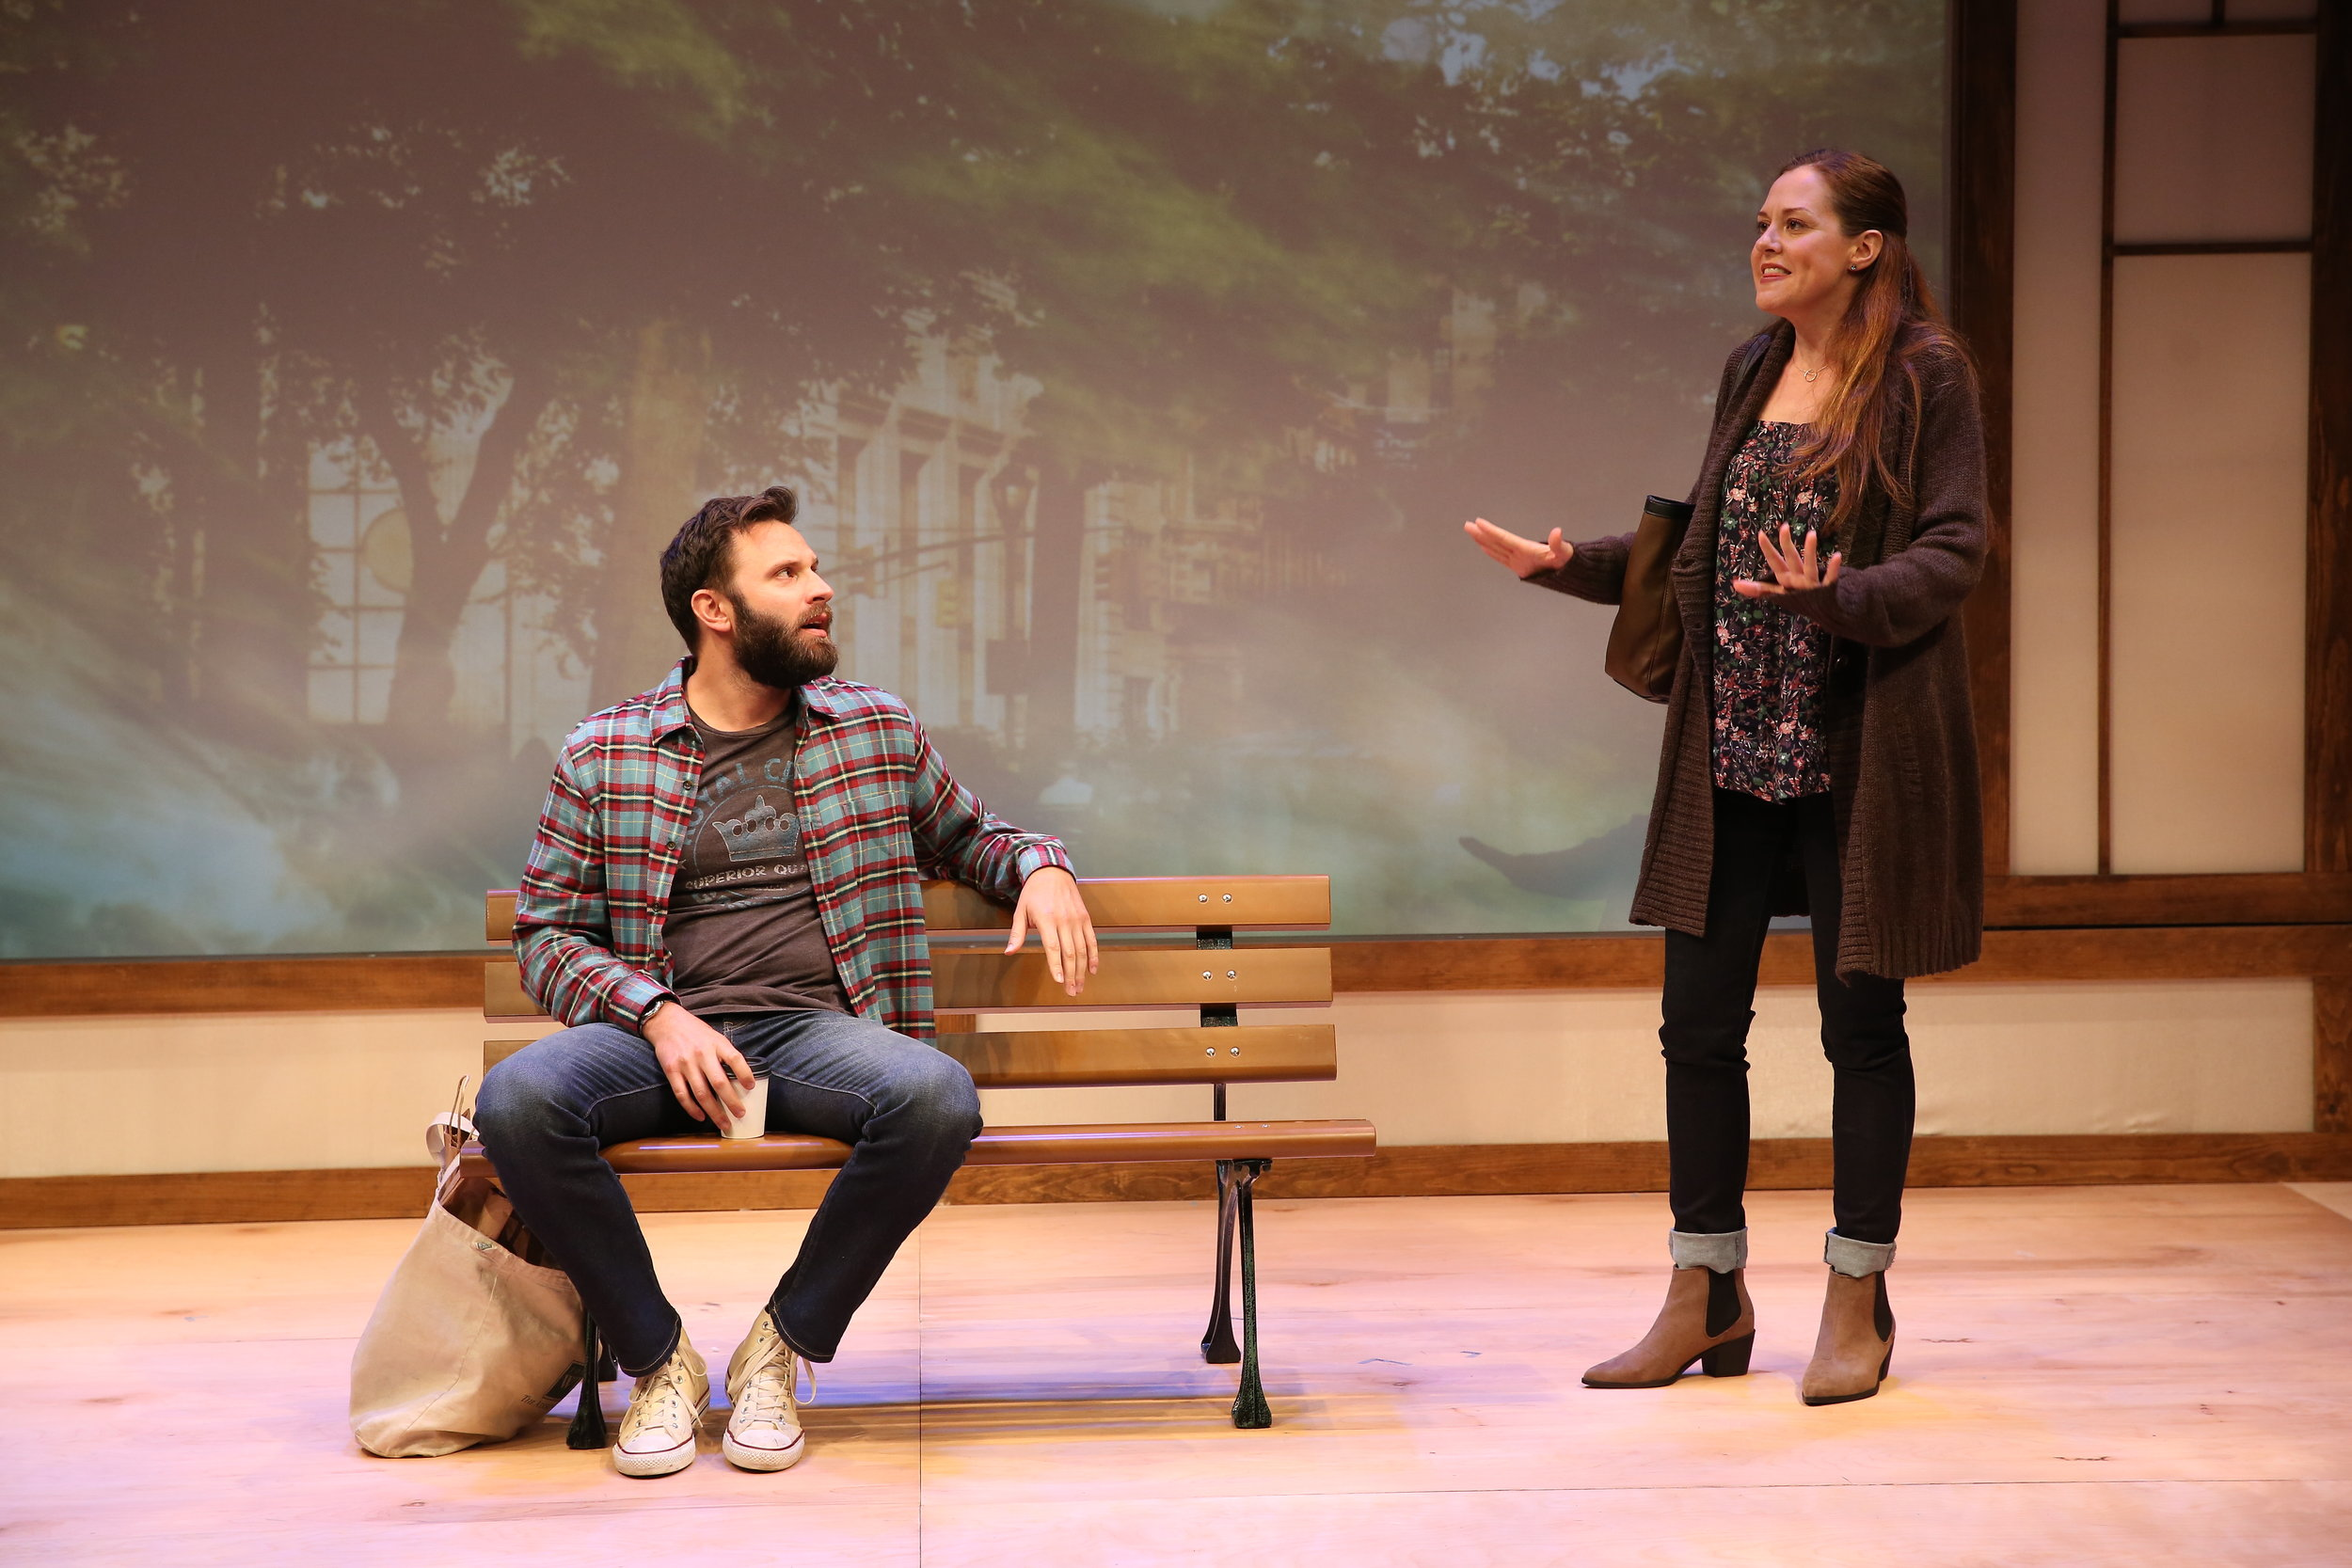 L-R: Quincy Dunn-Baker and Claire Karpen in JACK by Melissa Ross, part of Summer Shorts 2017 at 59E59 Theaters. Photo by Carol Rosegg